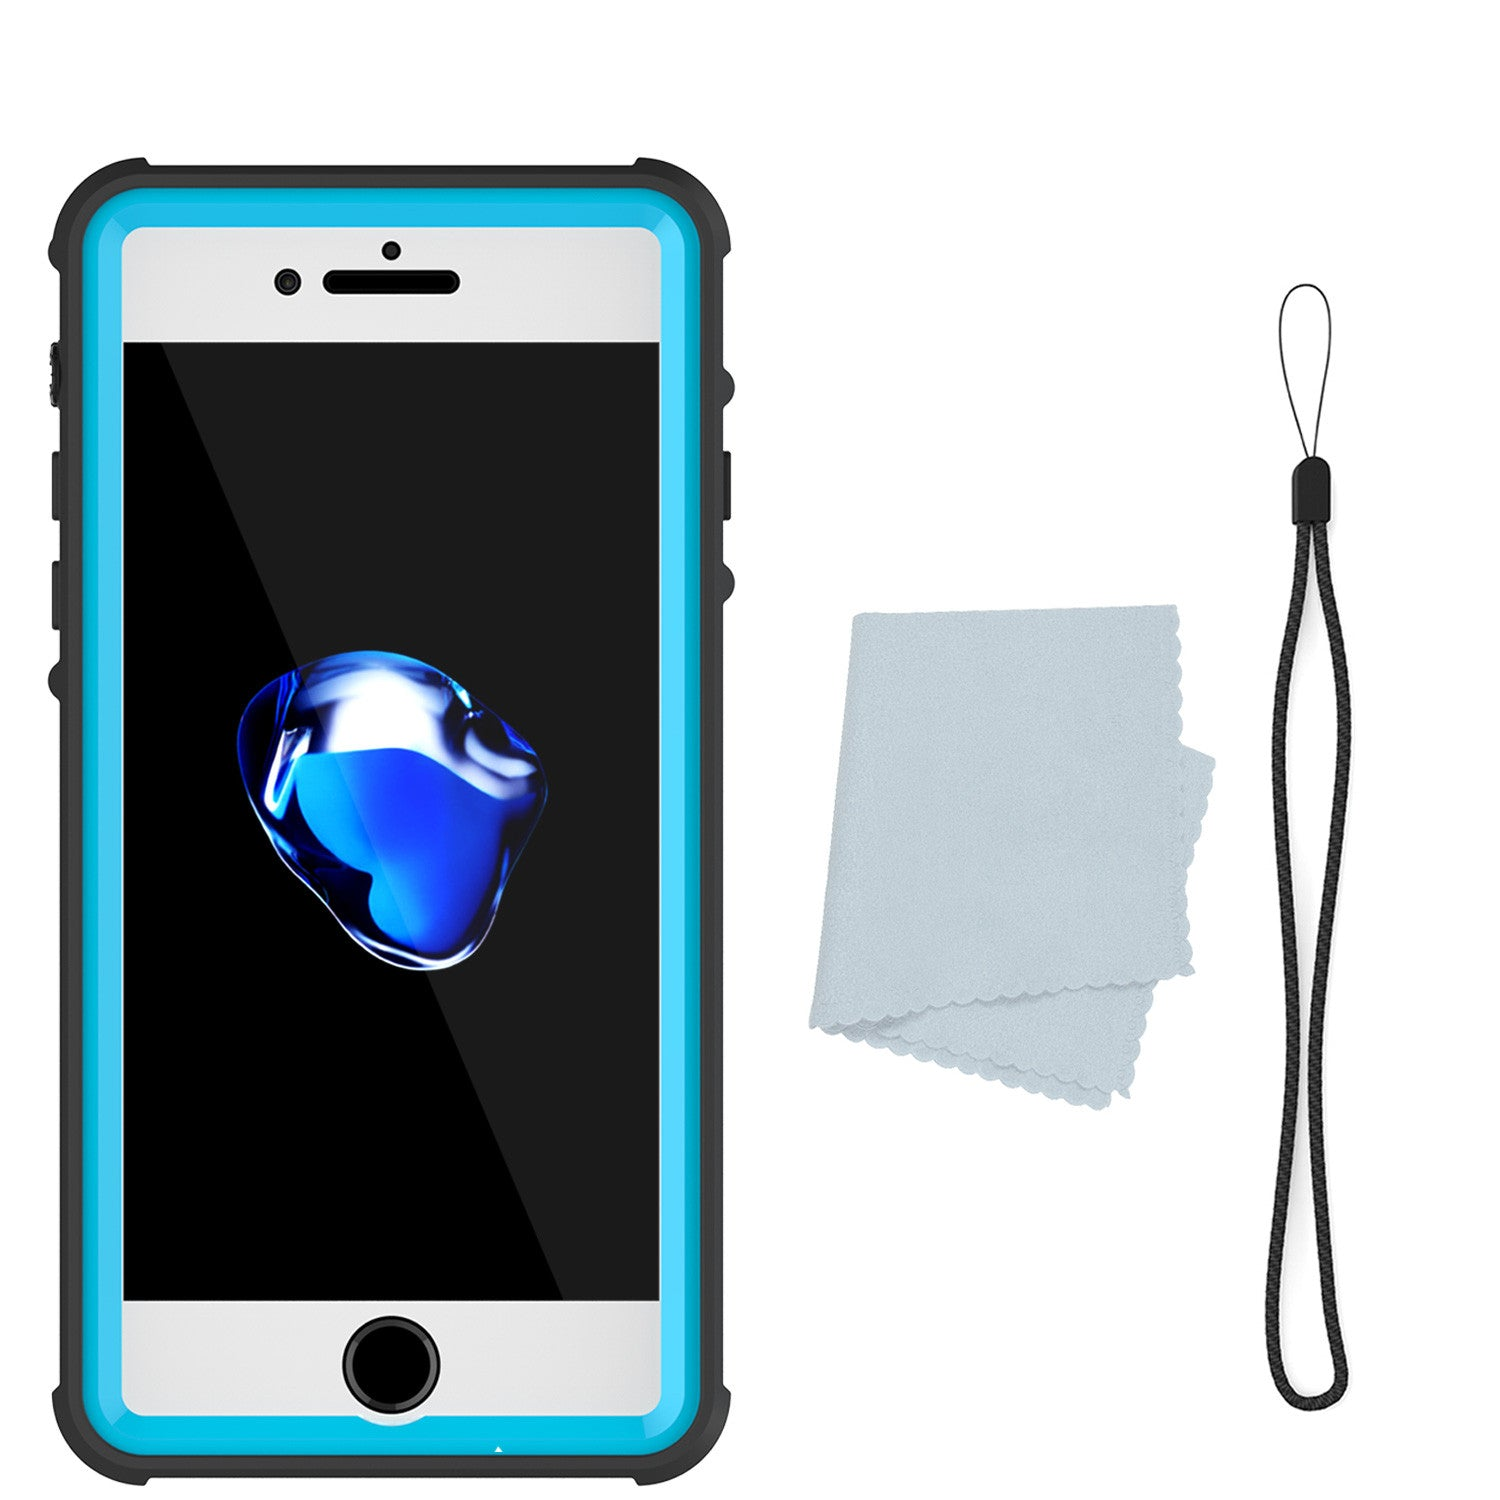 iPhone 7+ Plus Waterproof Case, PUNKcase CRYSTAL Light Blue  W/ Attached Screen Protector  | Warranty